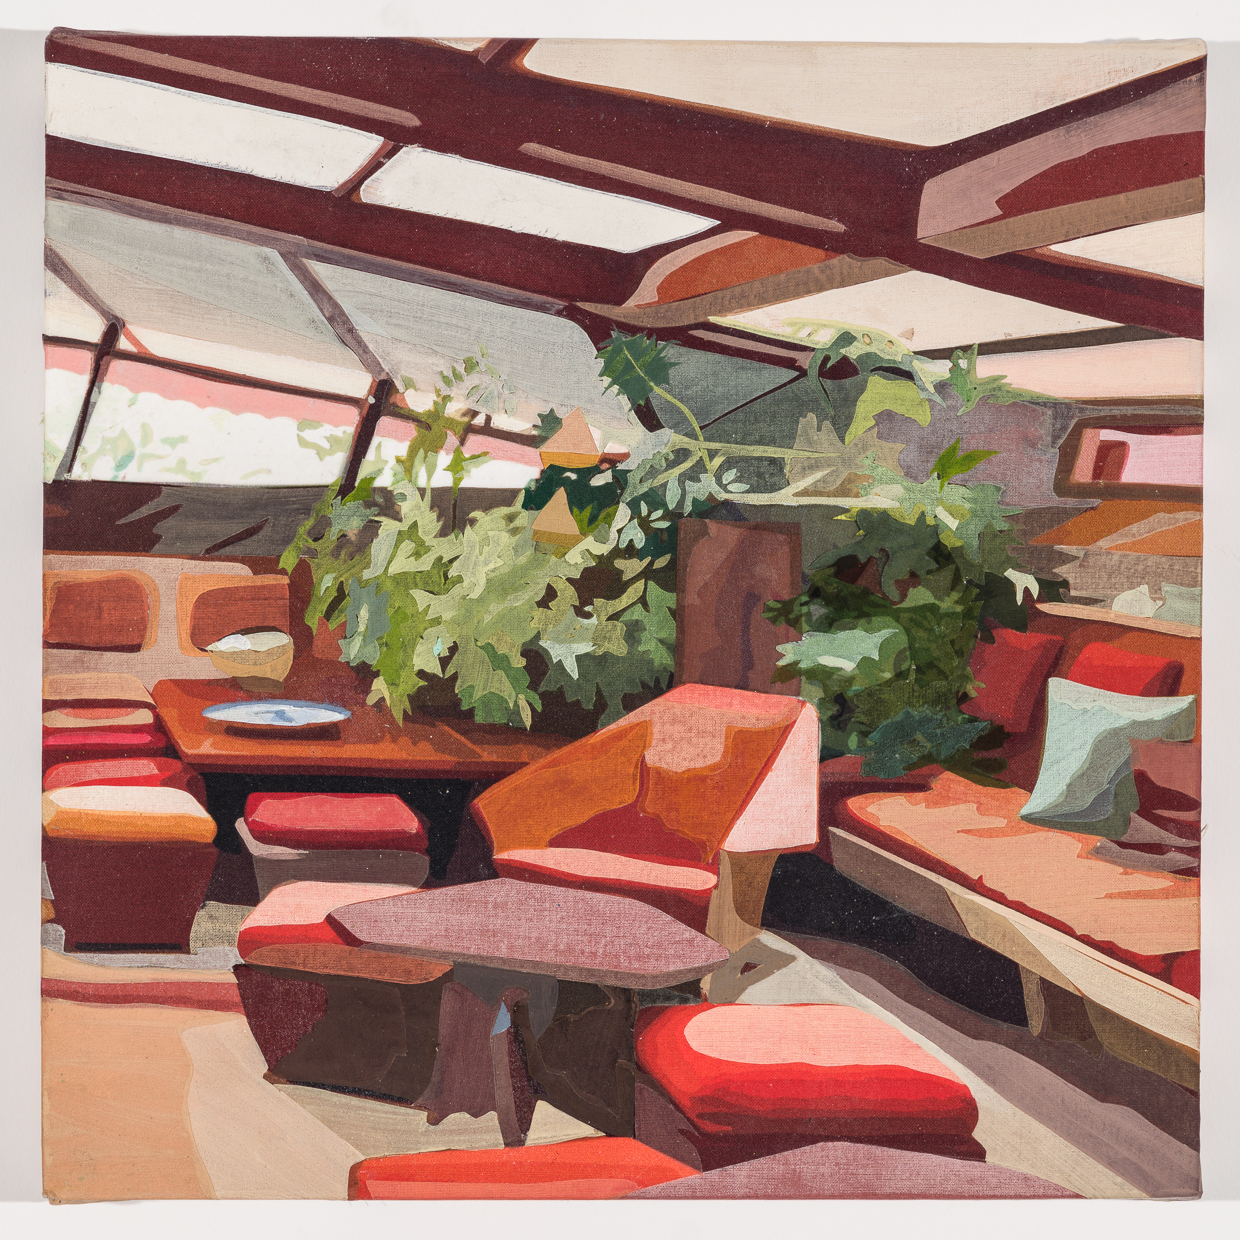 Frank Lloyd Wright's Living Room (right side) , acrylic on pigment-printed fabric on panel, 12 x 12 inches, 2019.  Photography by    Paul Takeuchi